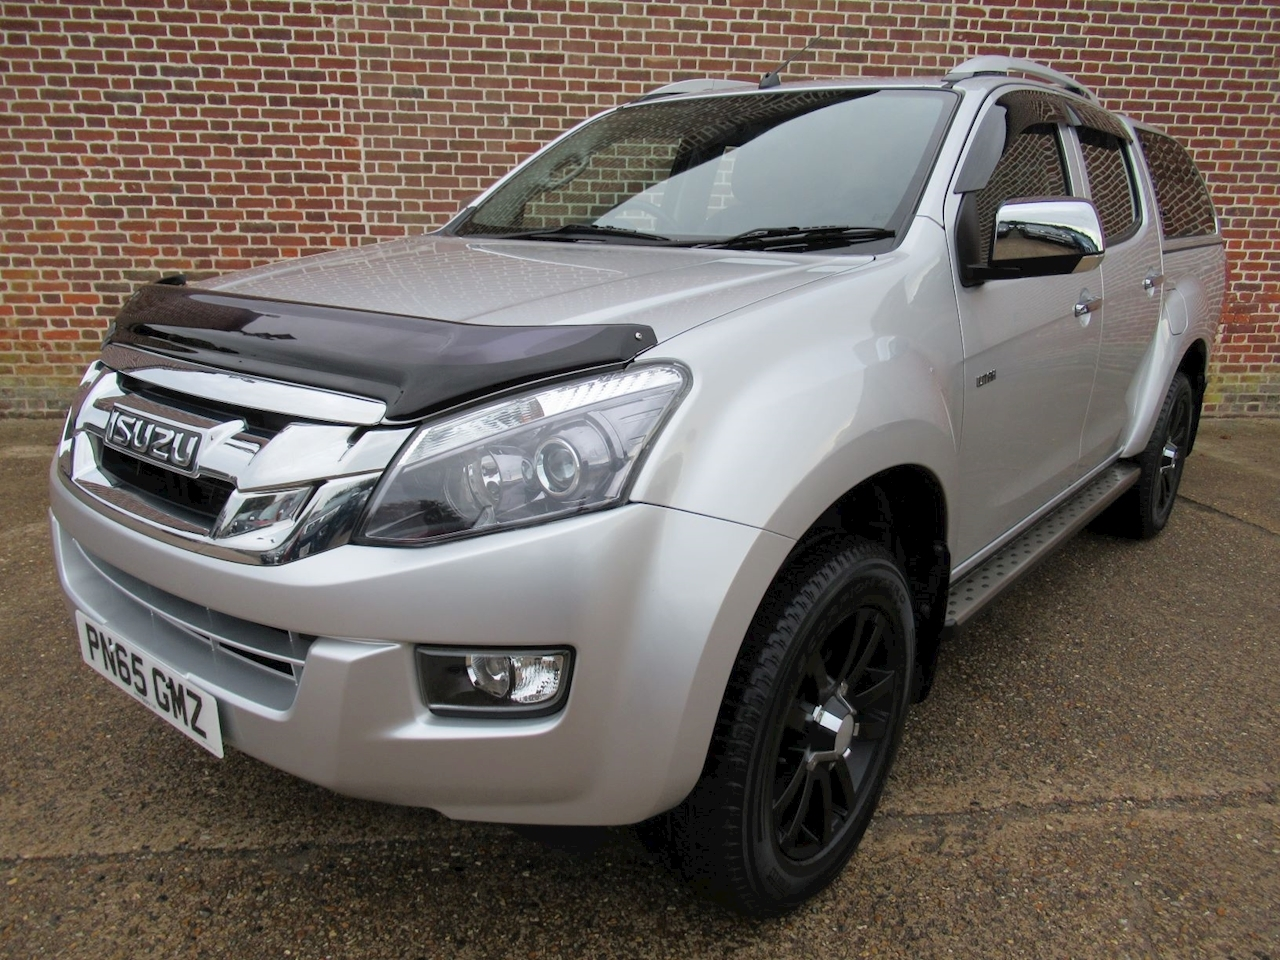 Isuzu D-Max Td Utah Vision Dcb 2.5 4dr Pick-Up Manual Diesel